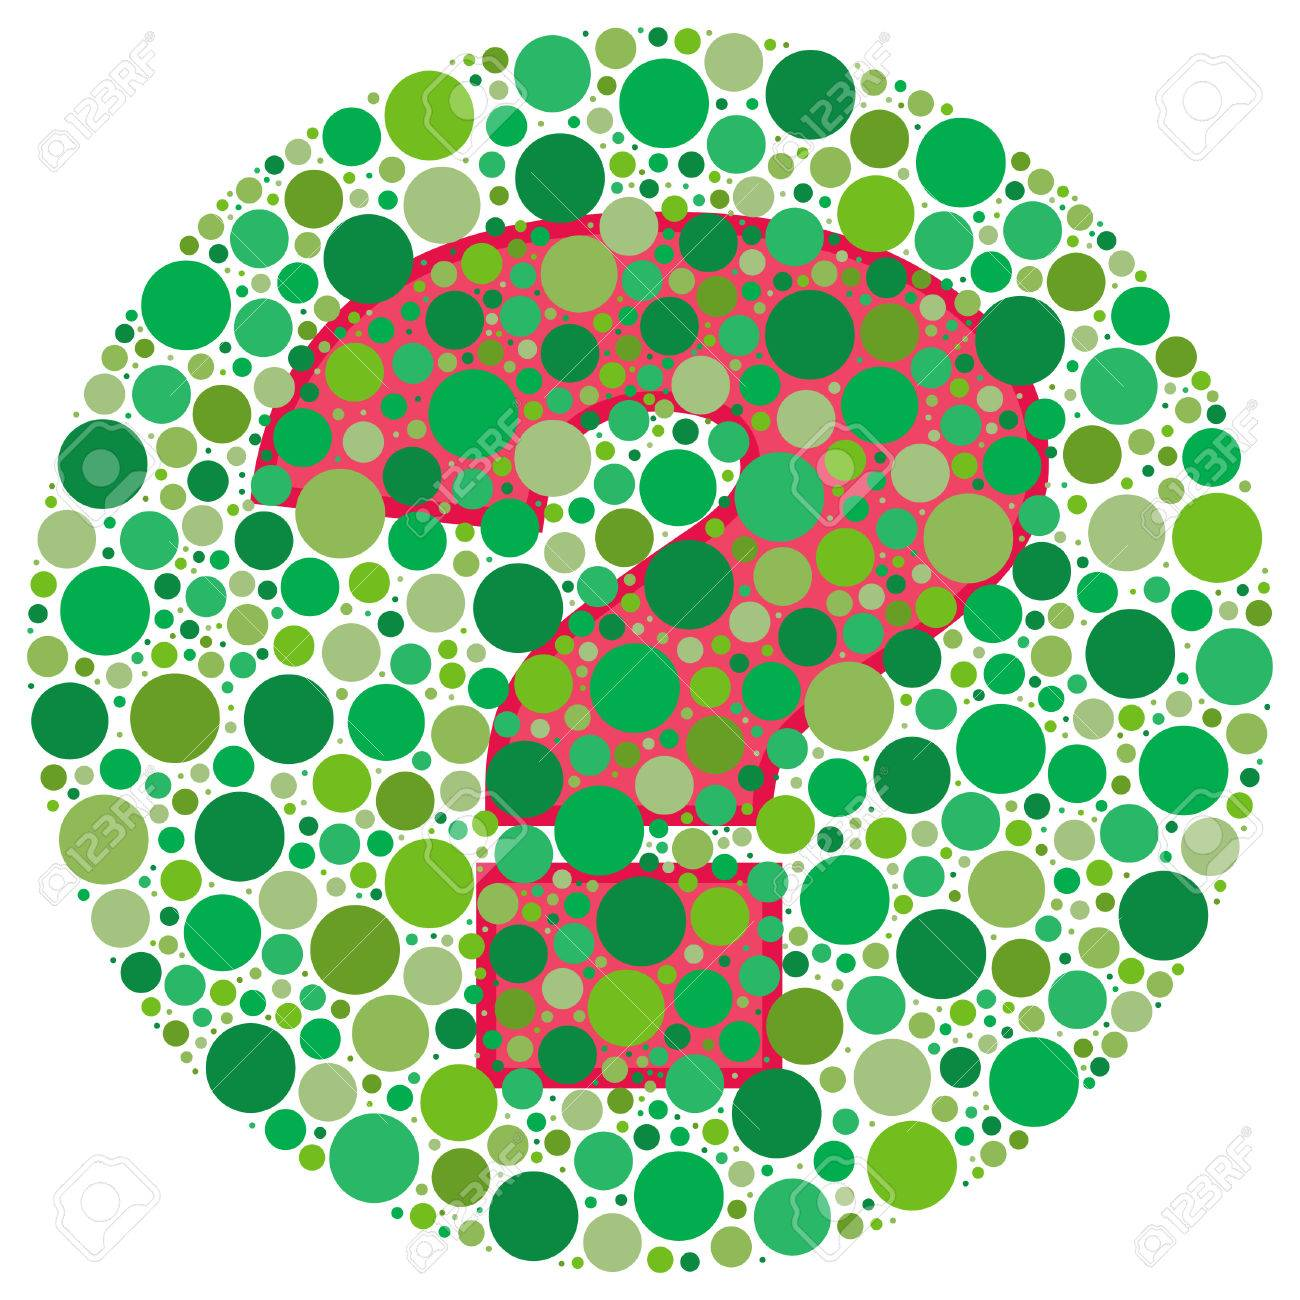 Inspired By Colour Blind Tests, The Question Mark Is Behind Green ...